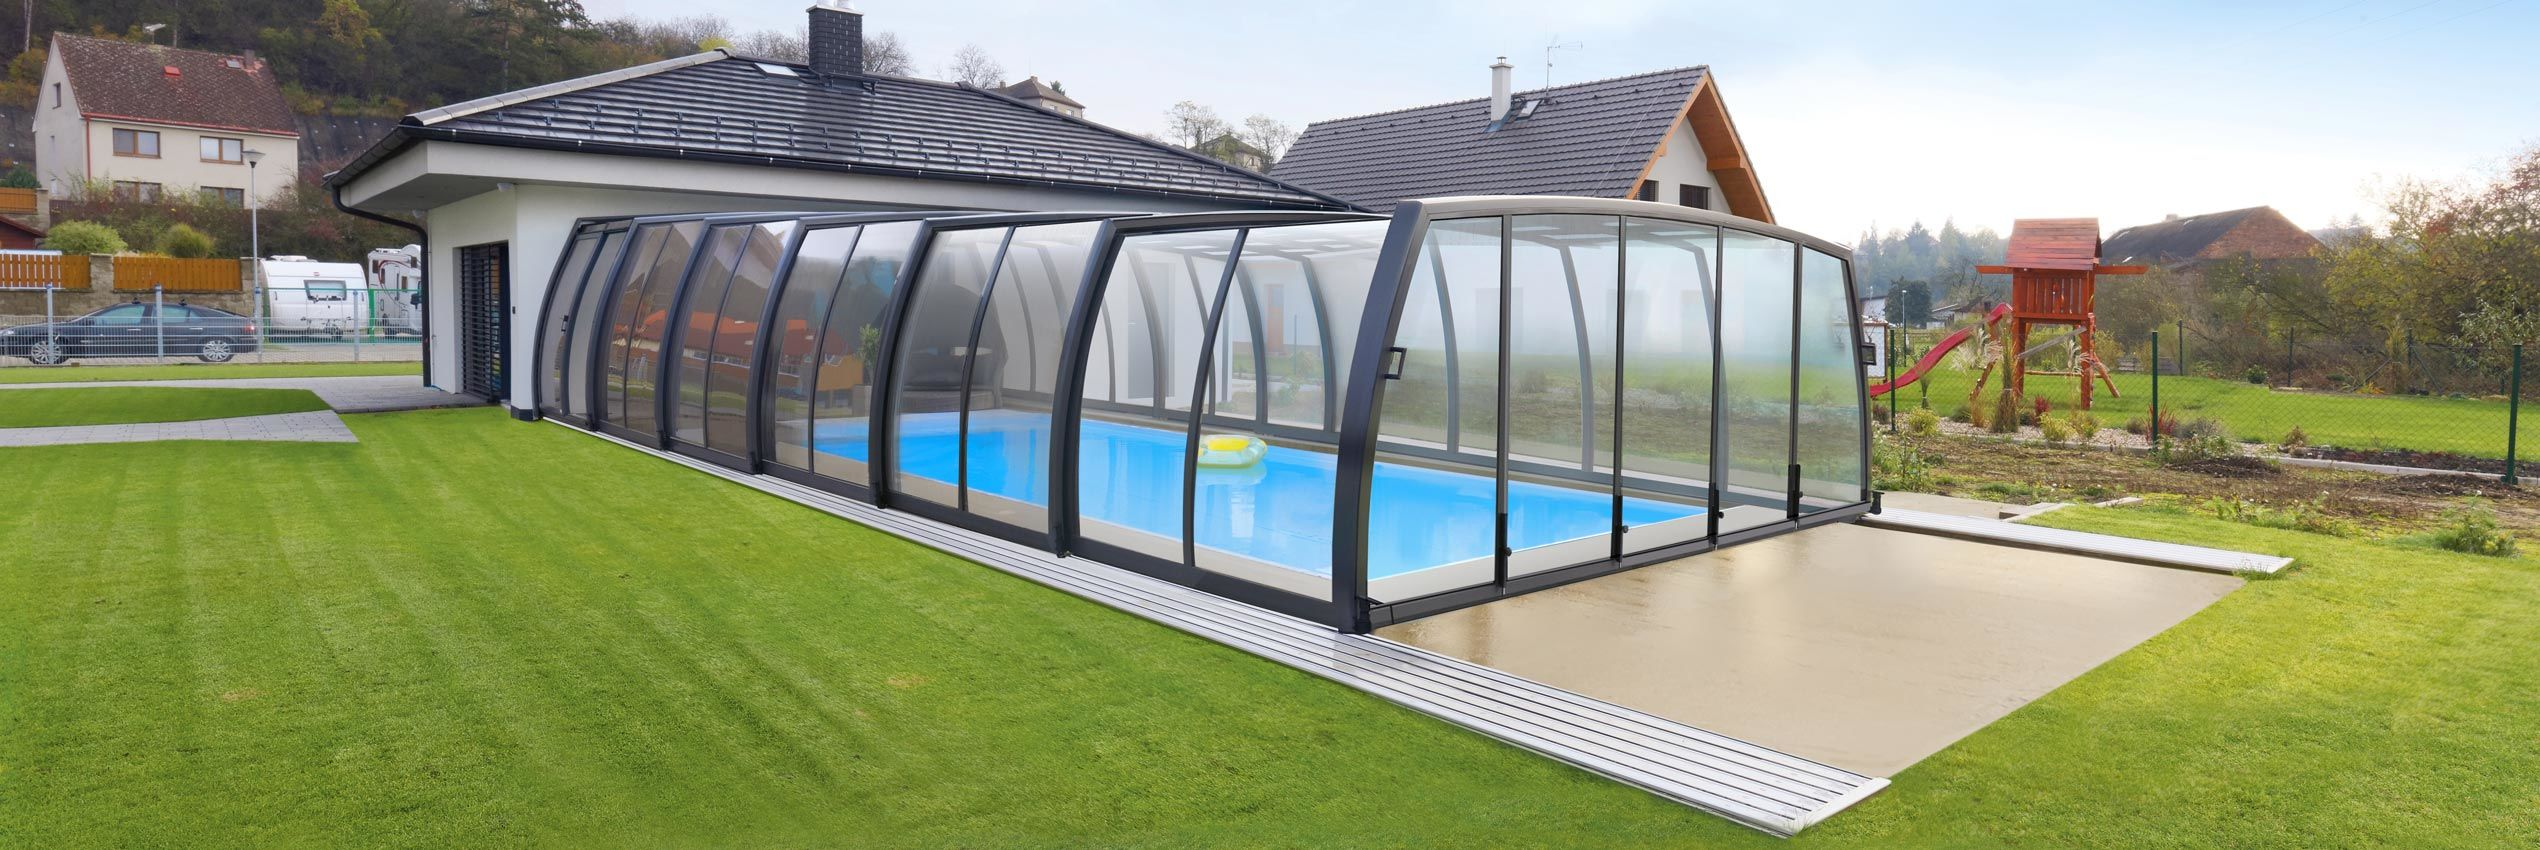 High Pool Enclosures Omega from Alukov